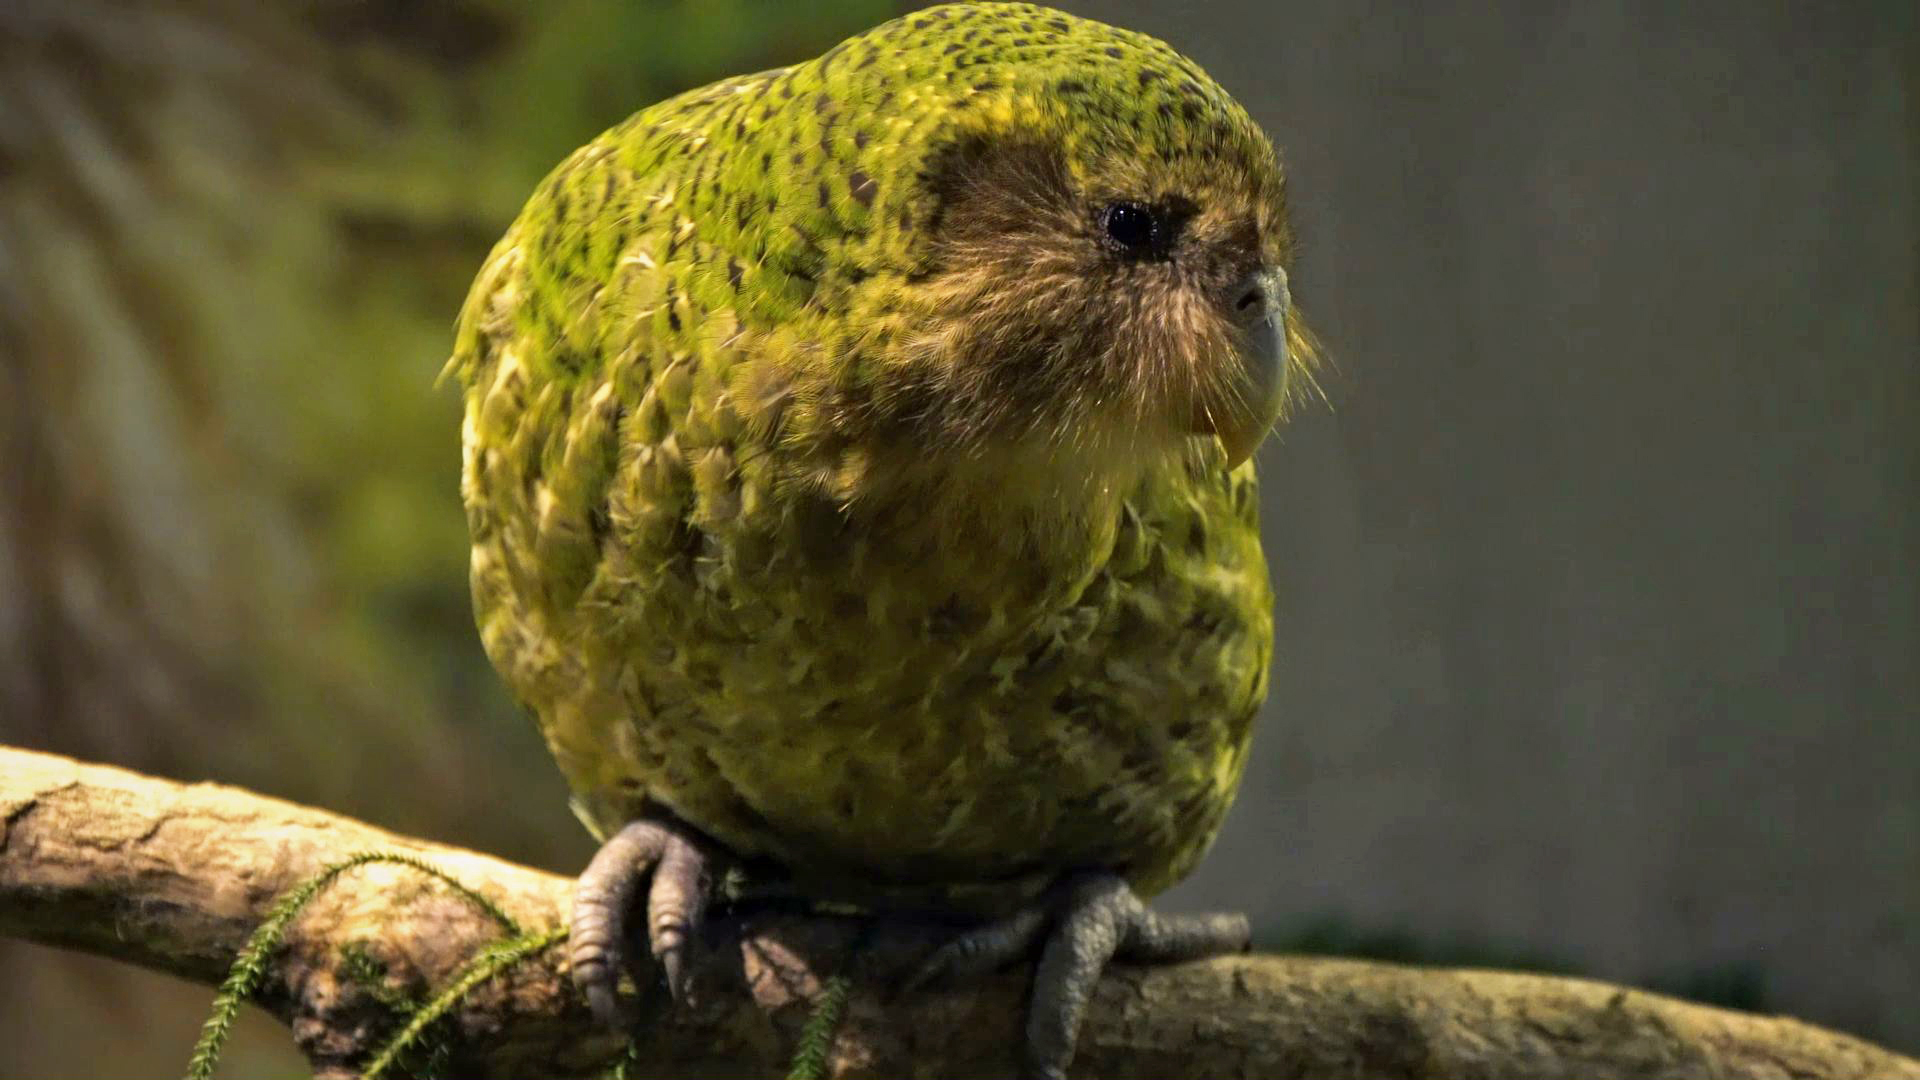 Creature Clip: Kākāpō - 2:36 - Meet Sirocco, a rare kākāpō and the only one with its own Twitter account!